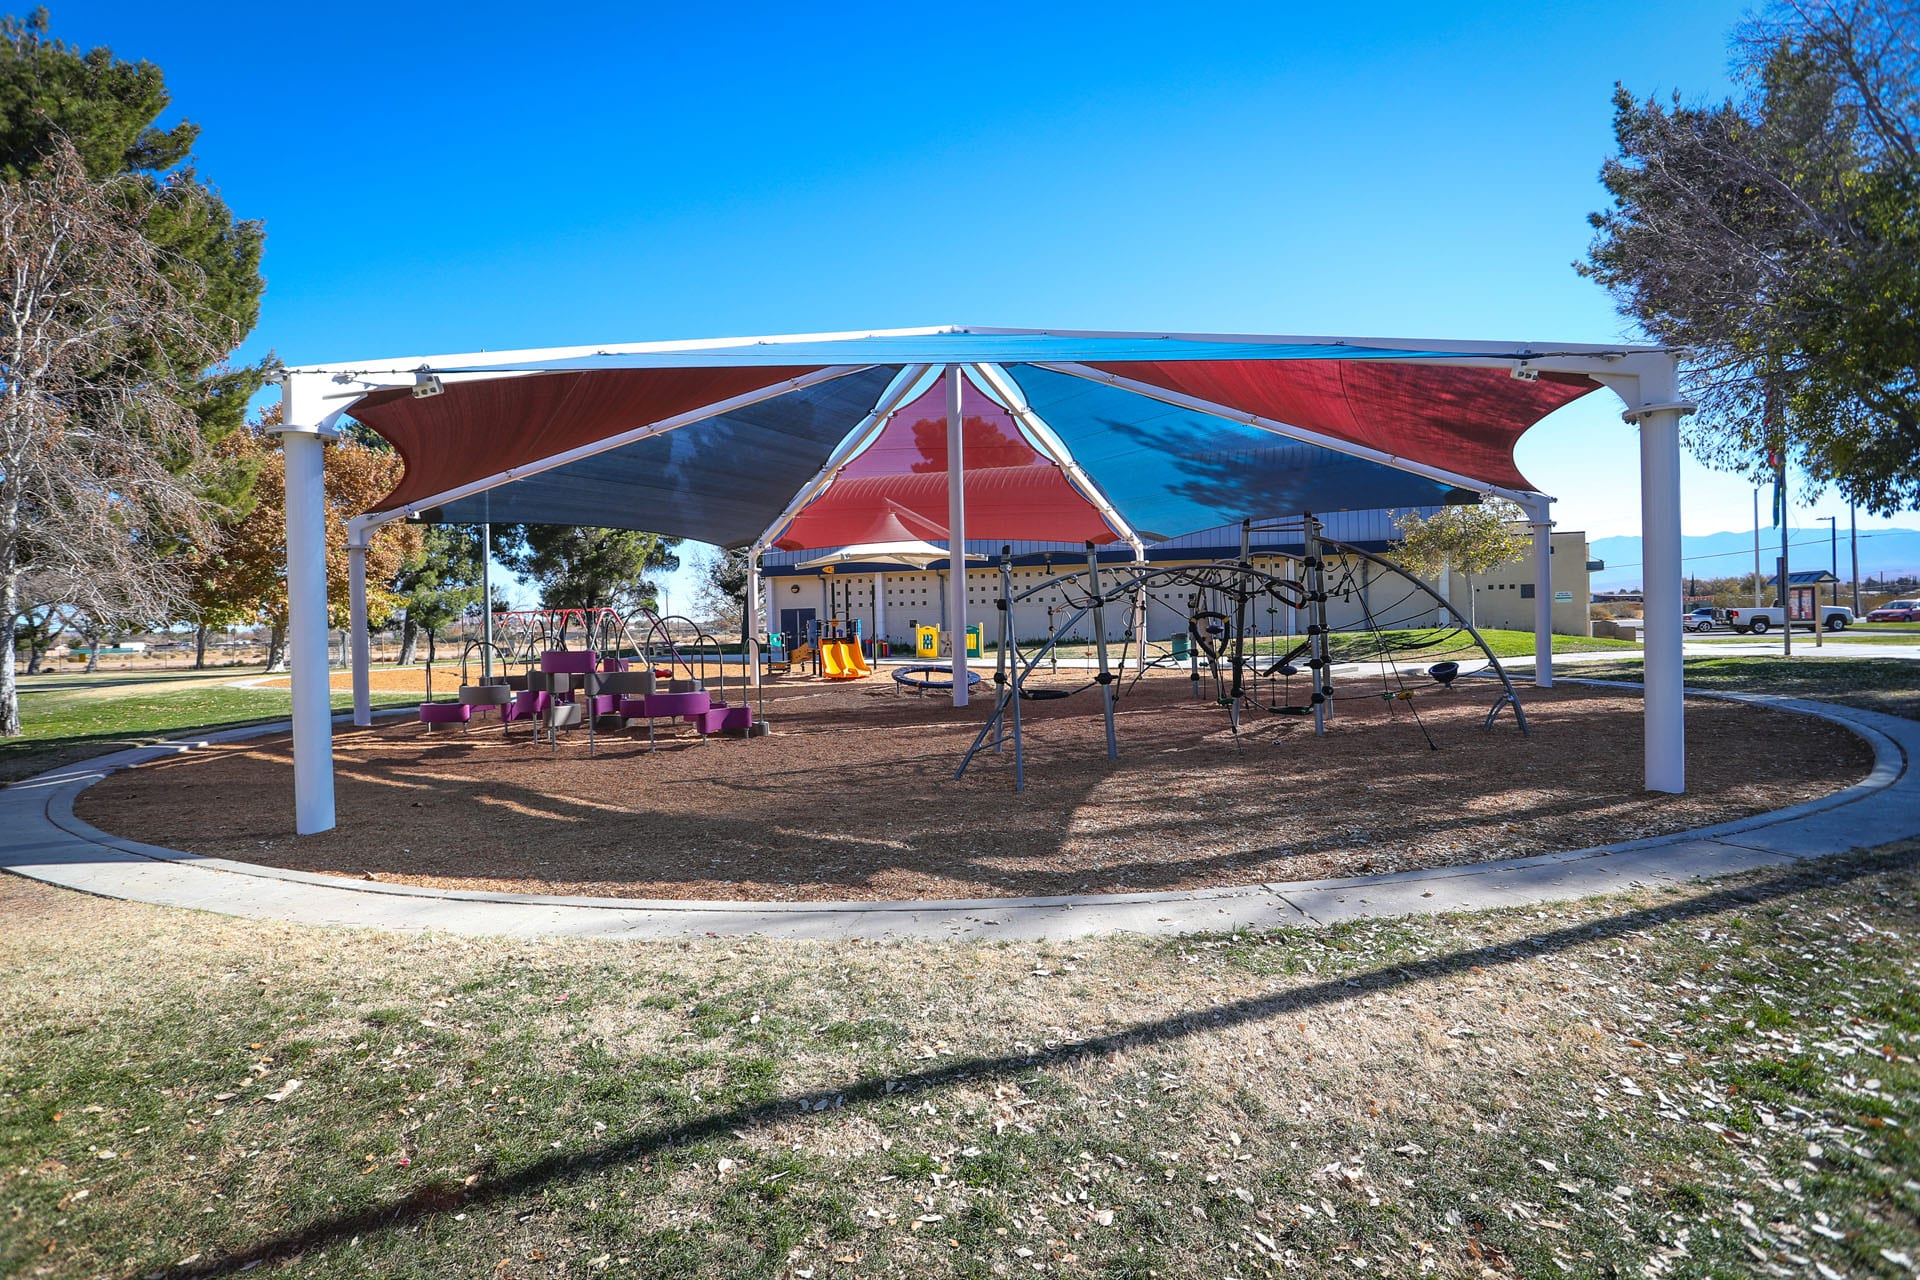 Outer view of tent covered playground